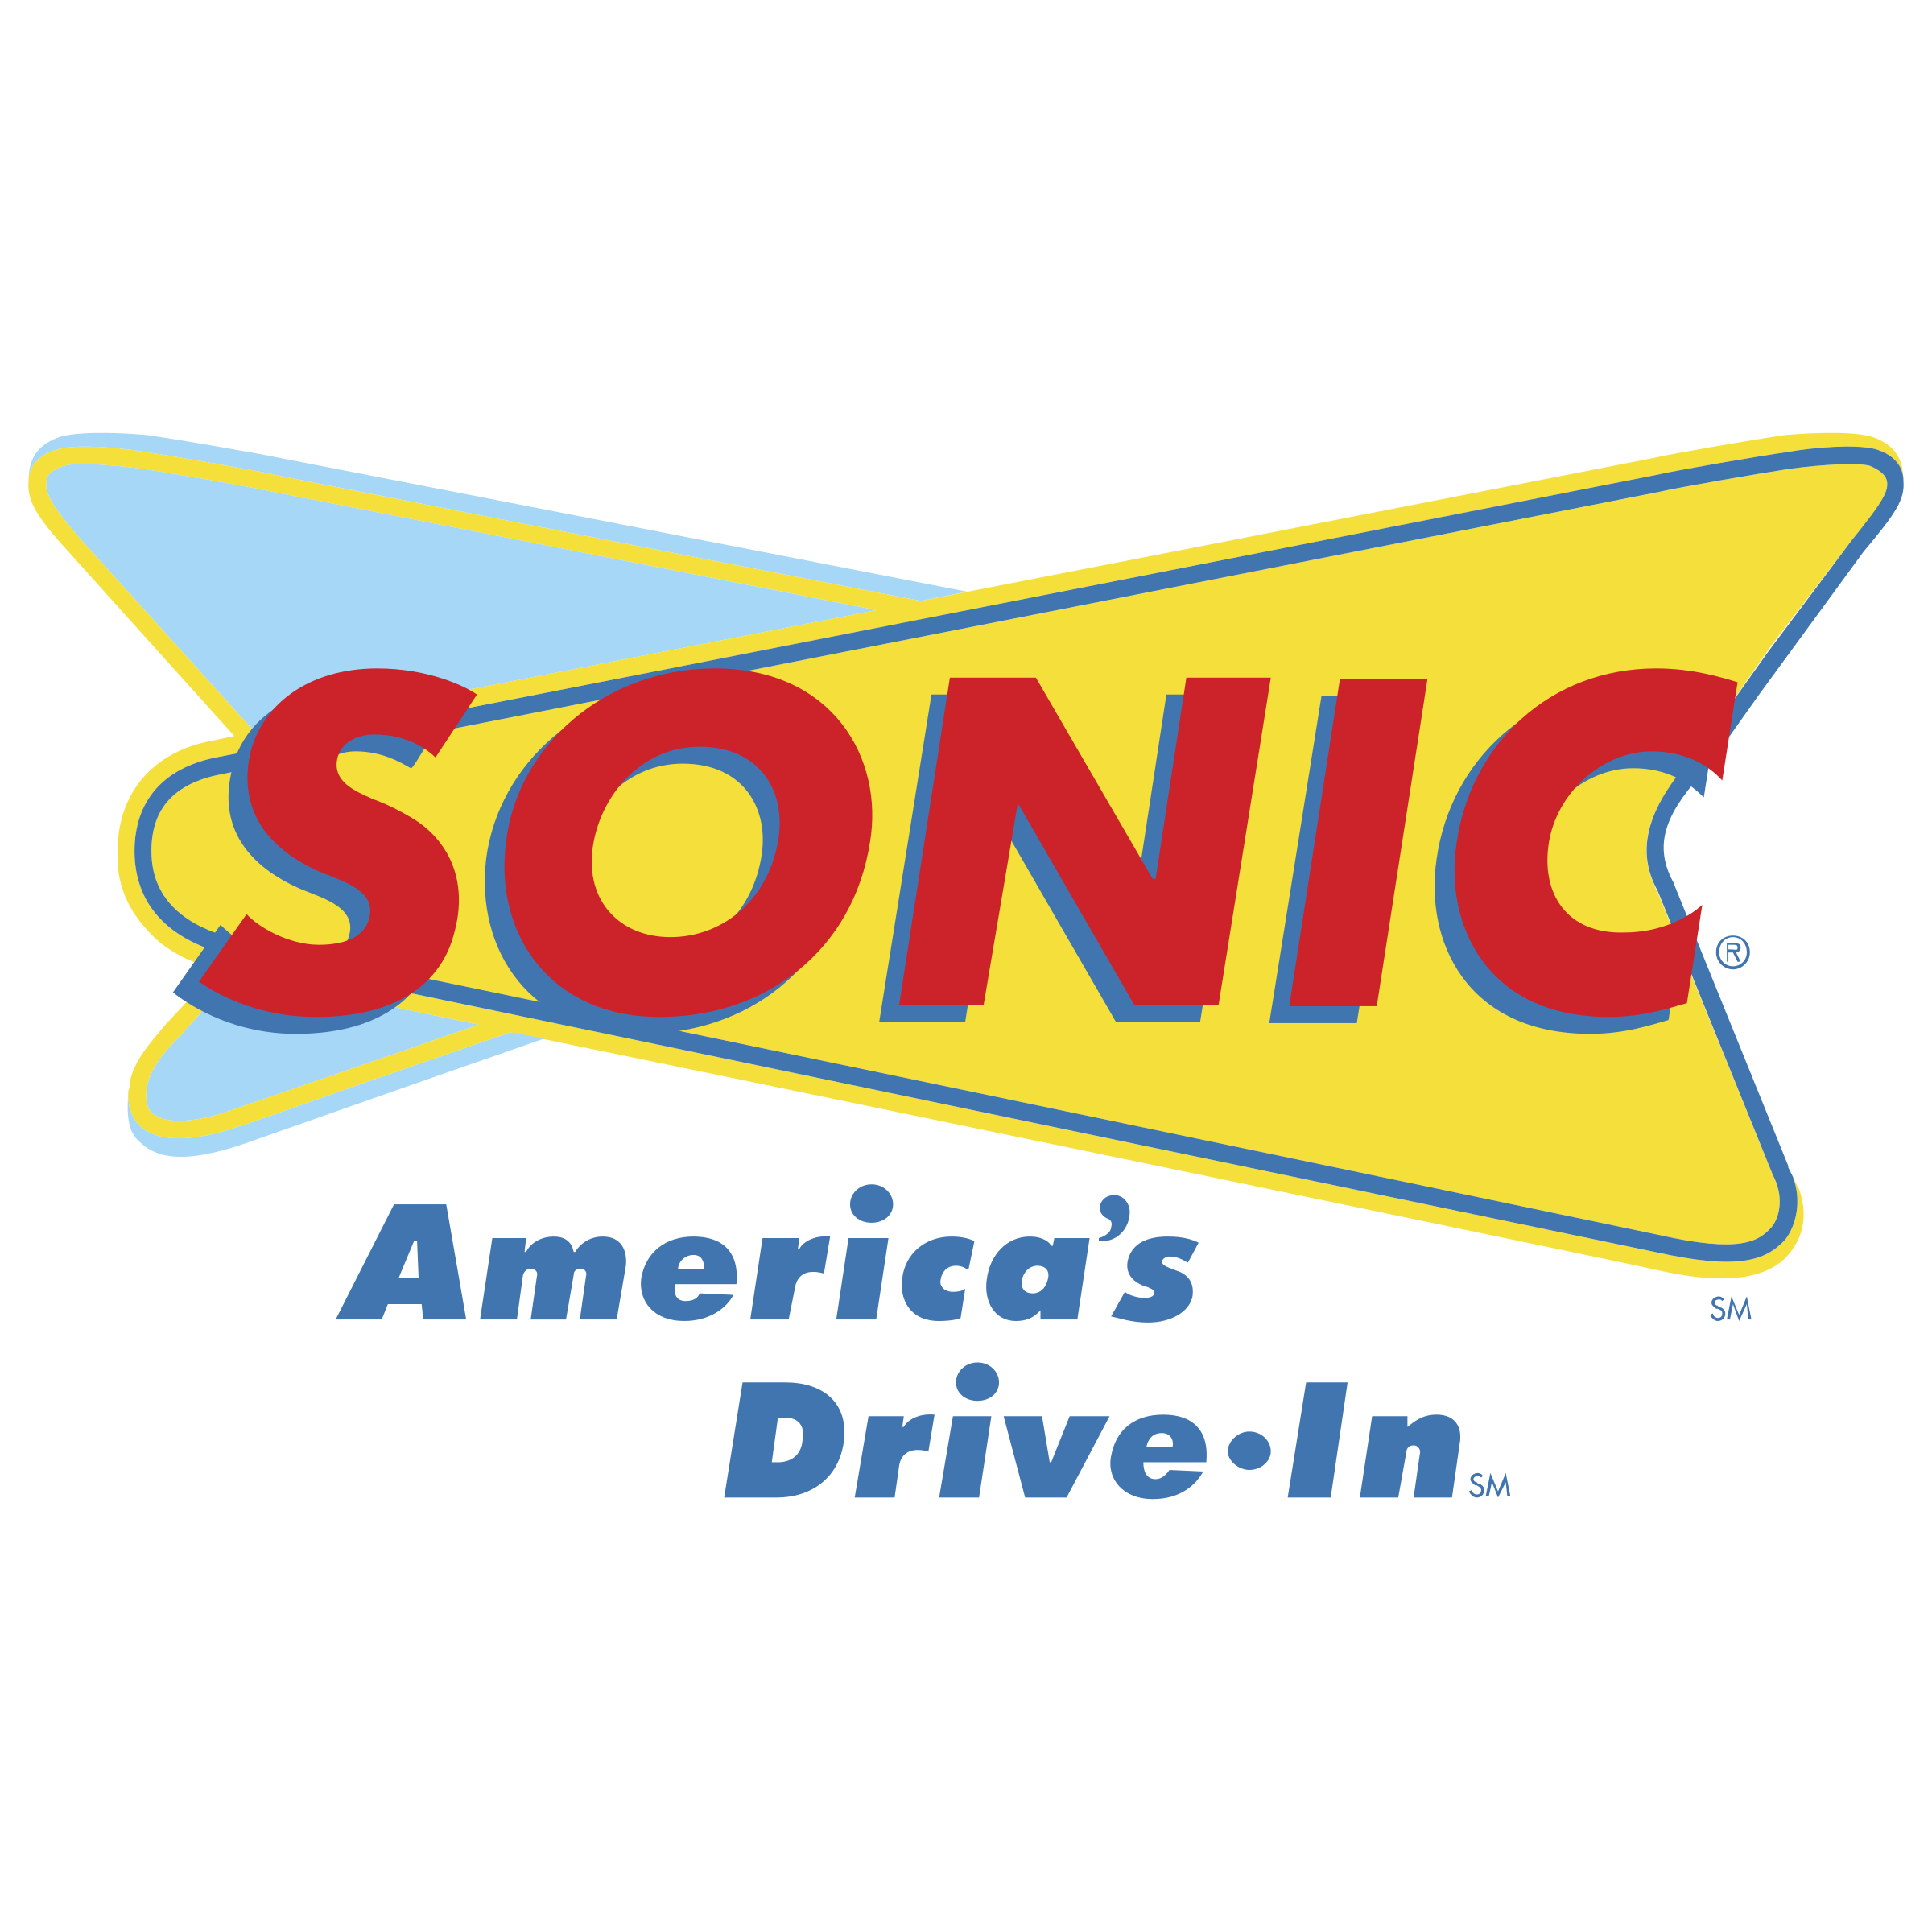 sonic-3-logo-png-transparent.png